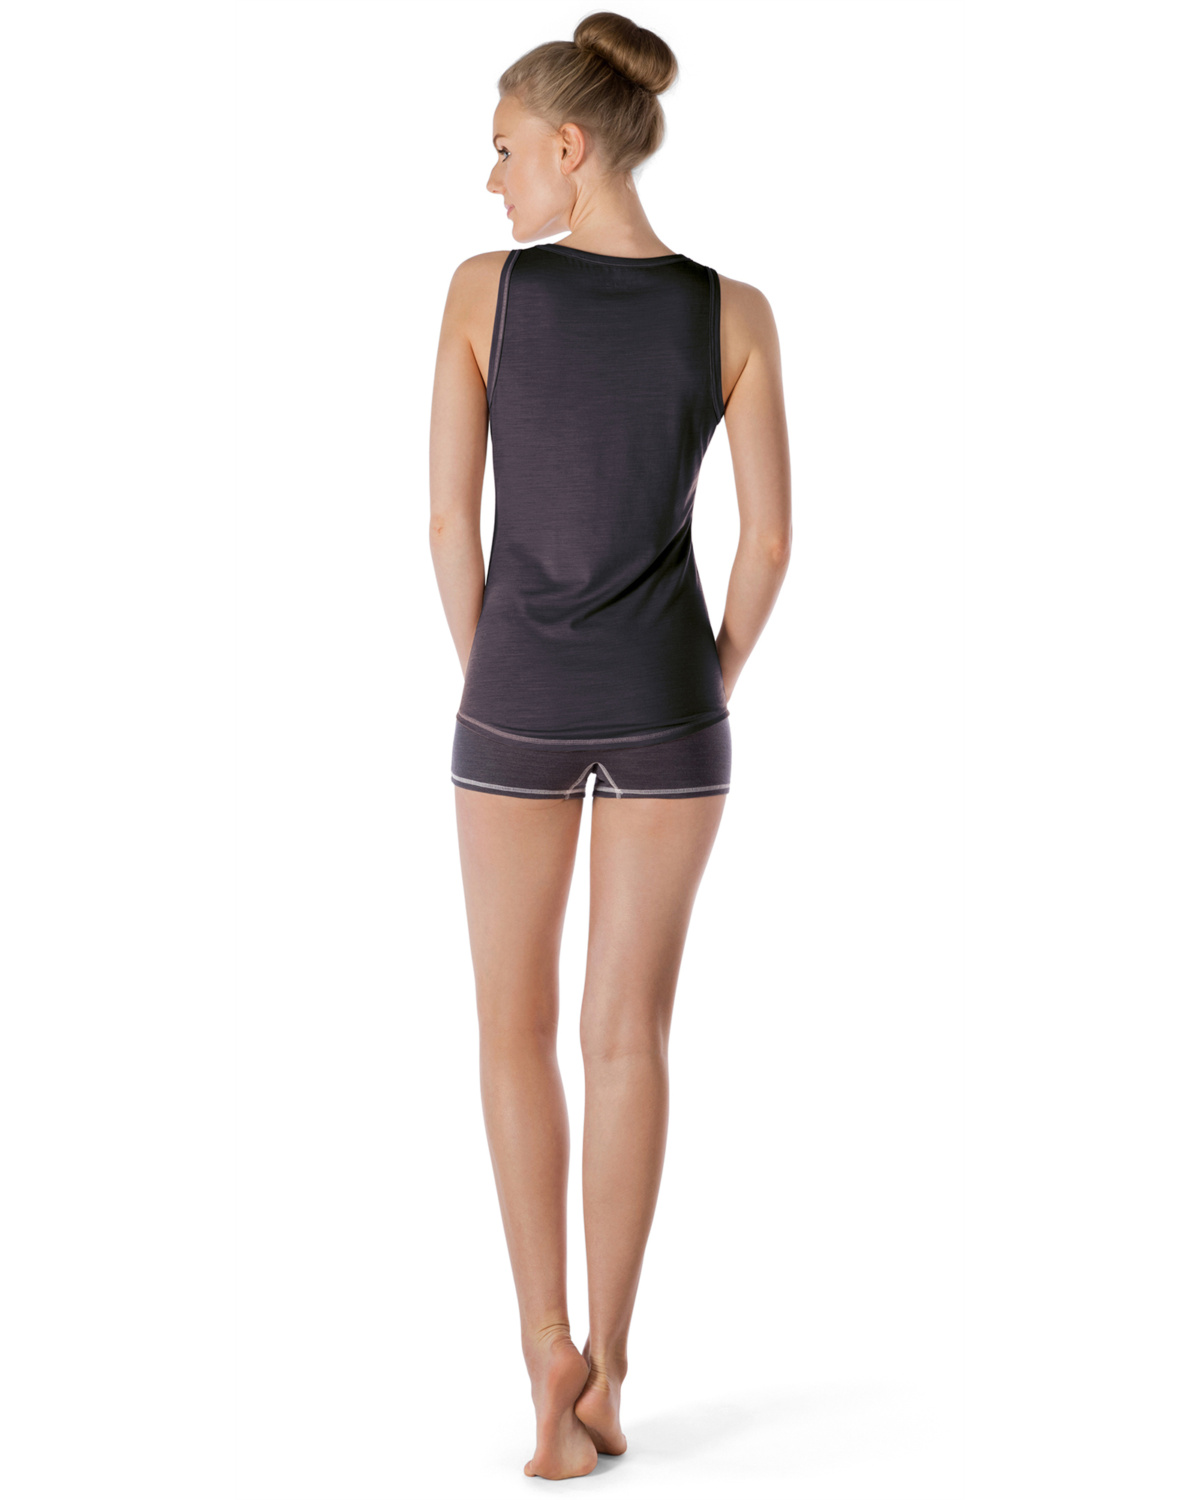 Skiny_ActiveWool_083406_4676 d